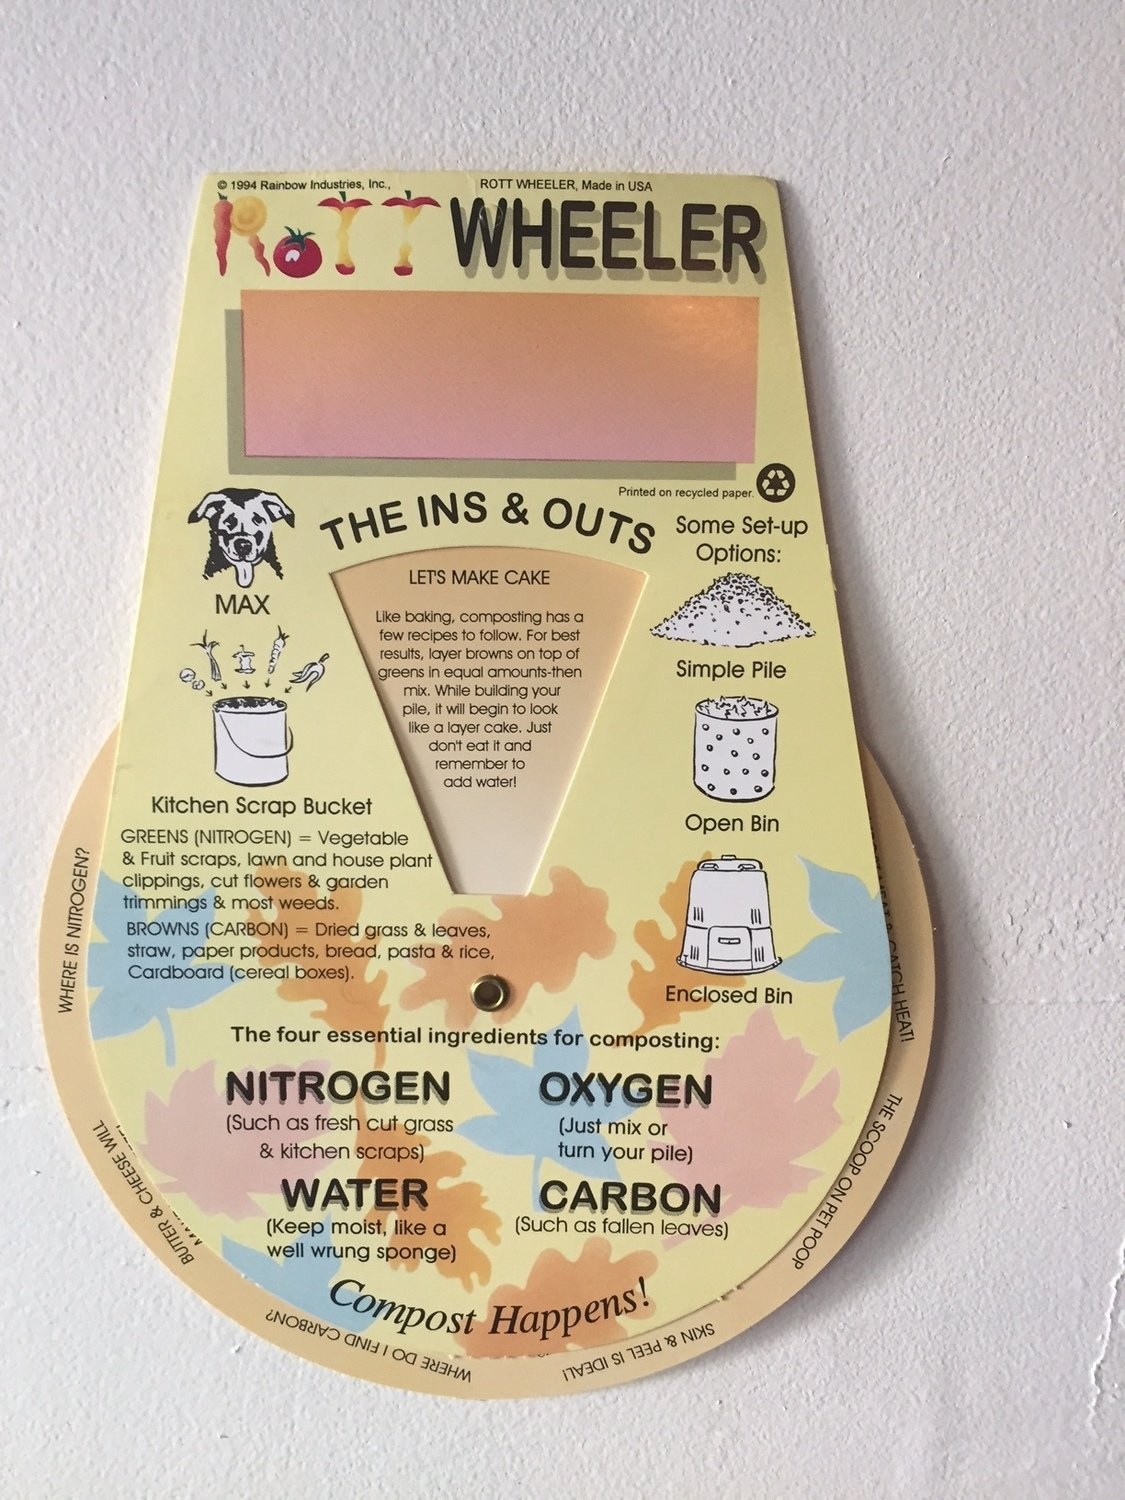 Rottwheeler Educational Dial